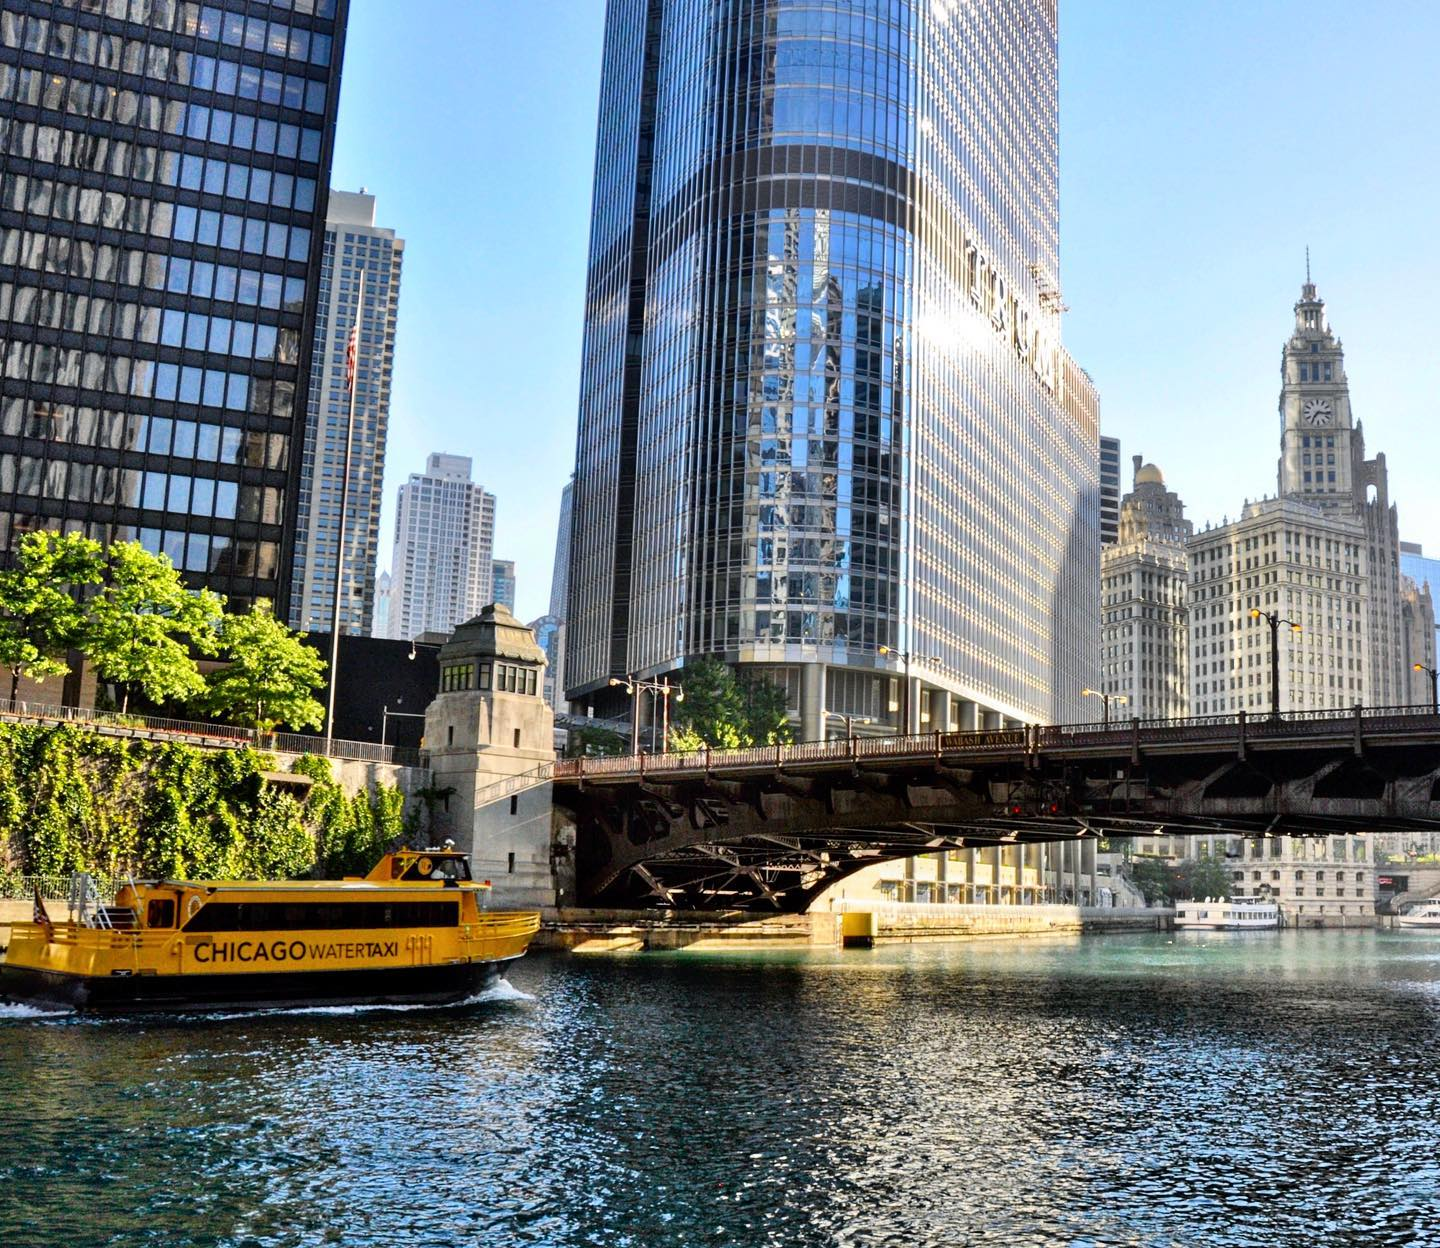 Chicago Riverwalk, Chicago, Illinois Do you also think that a river increases the attractiveness of a city? #usa #usatravel #usatraveler #usareise #chicago #illinois #chicagoriver #chicagoriverwalk #citytrip #citytravel #citylife #cityscape #cityphotography #travelgram #travelphotography #travelblogger #travelblog #reiseblog #reisefotografie #reiseblogger #reiselust #travelbug #instatravel